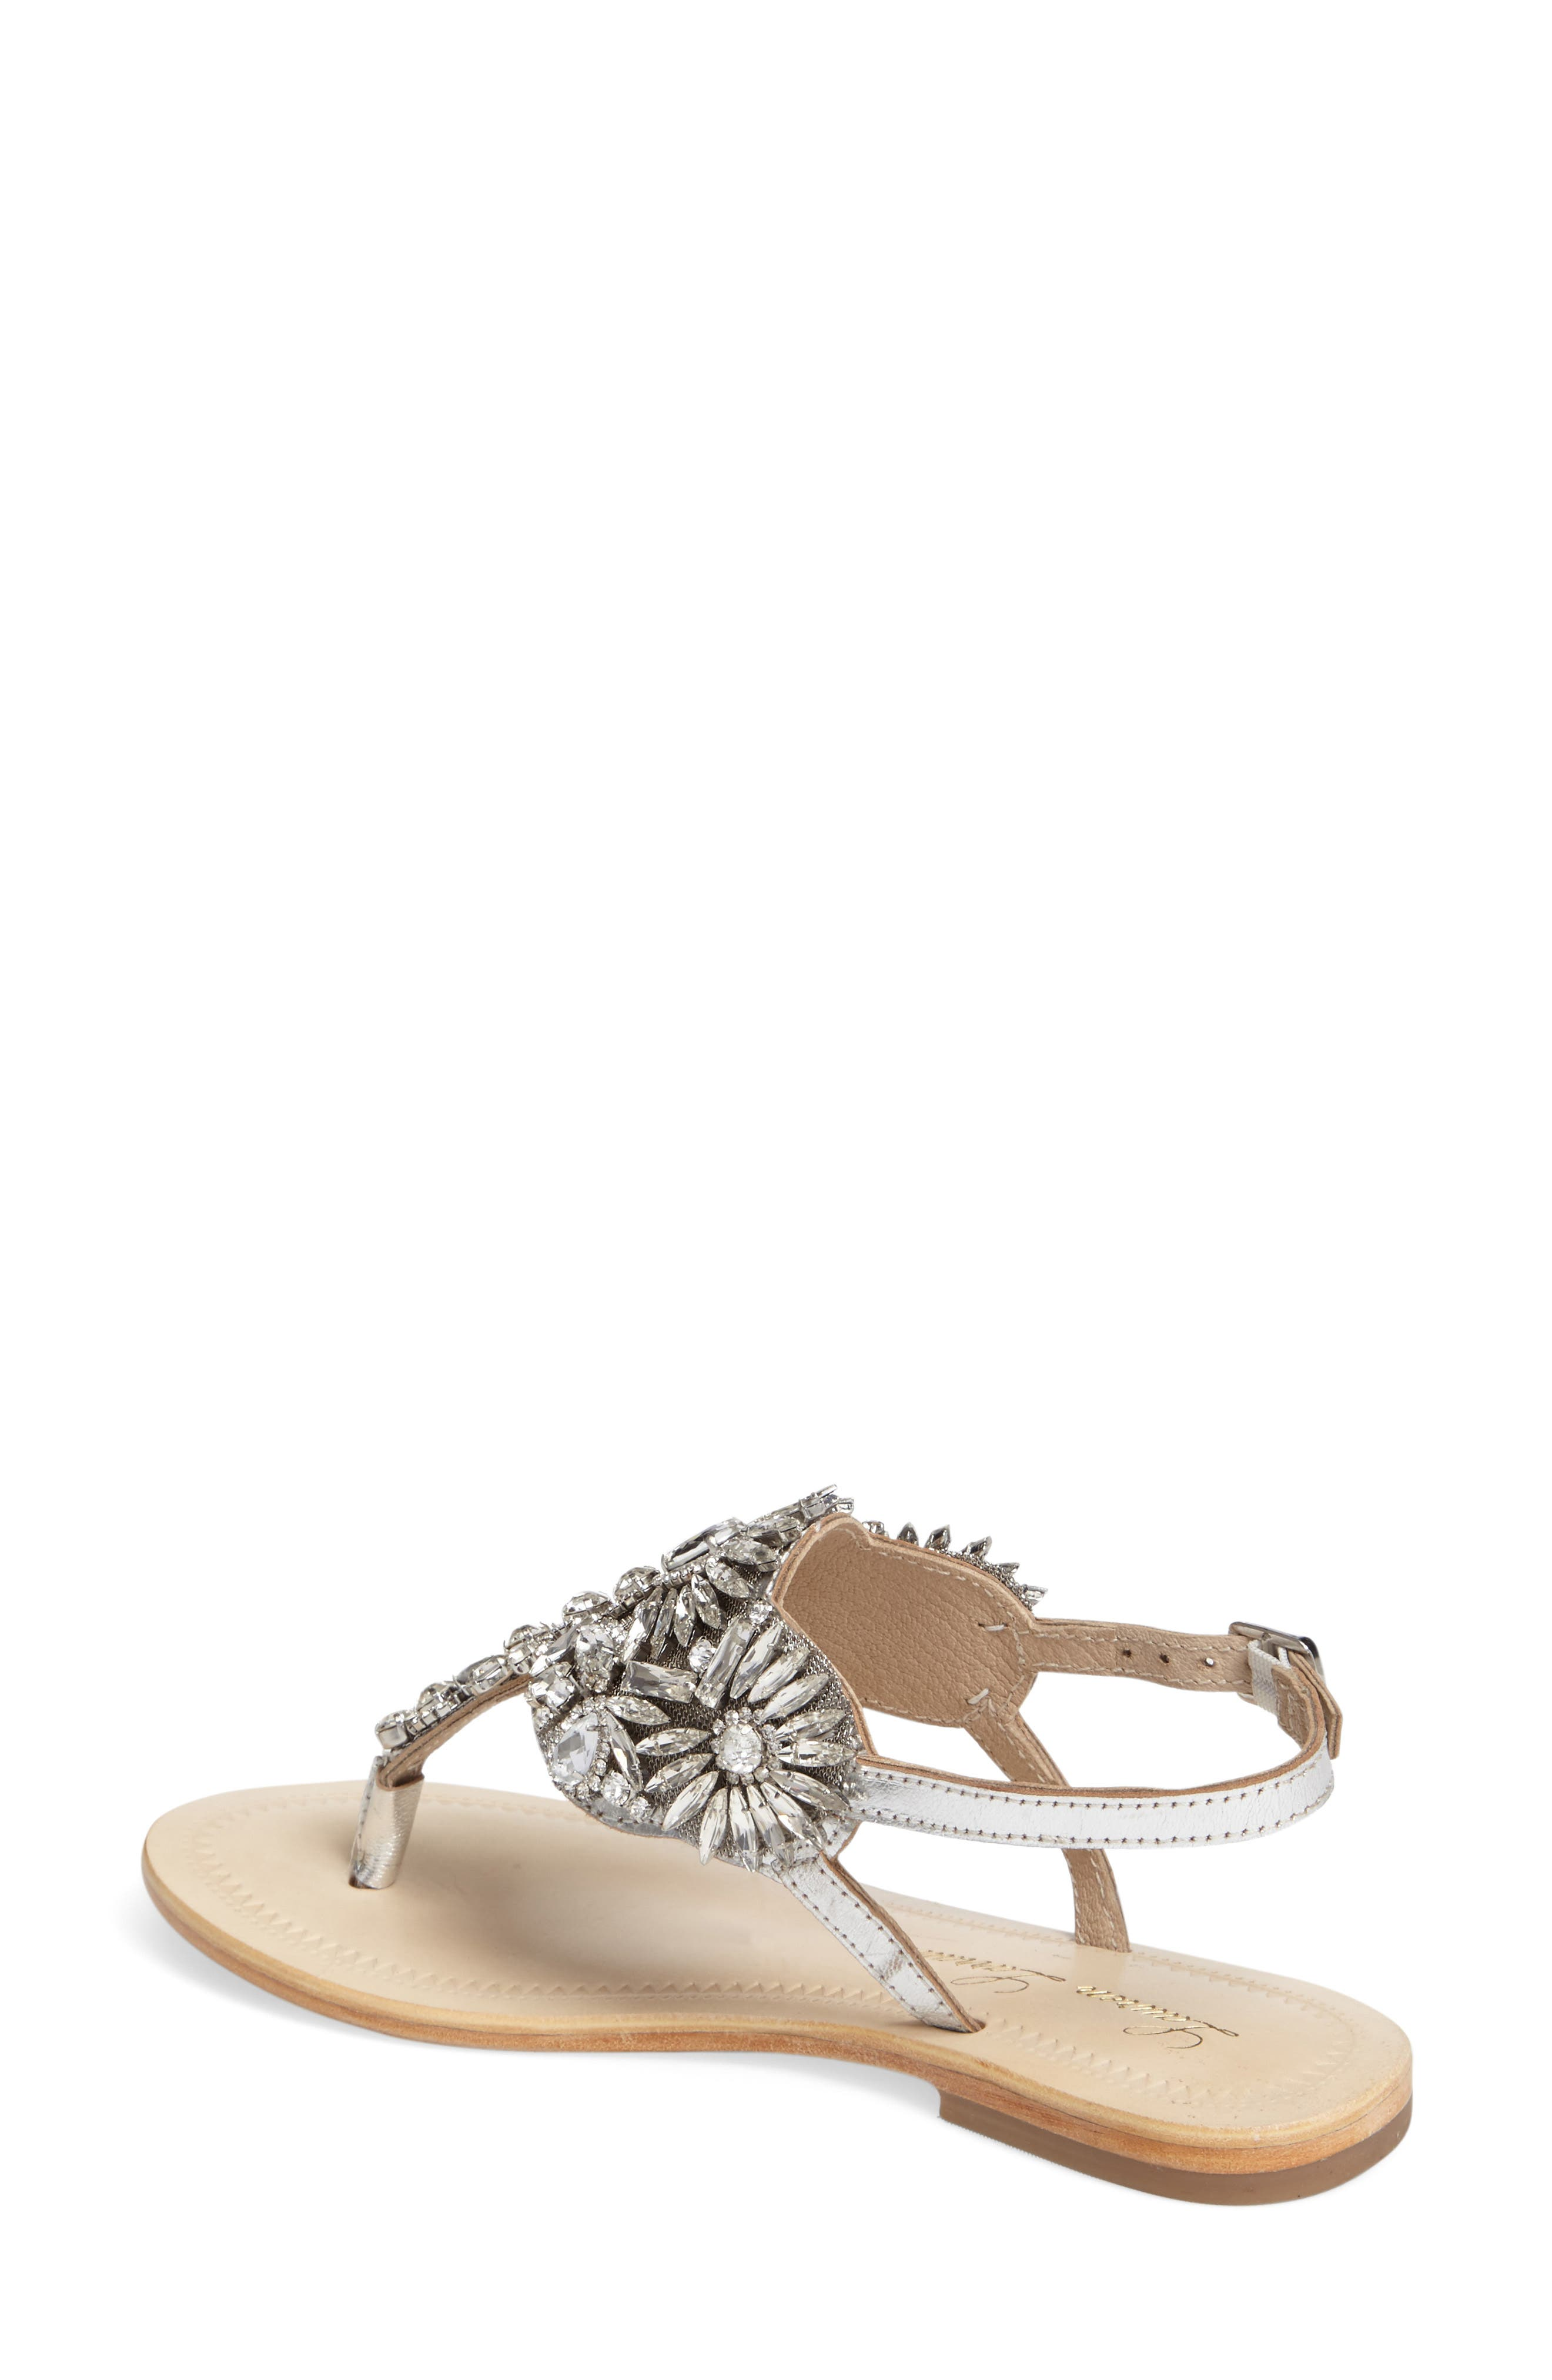 Vera Embellished Sandal,                             Alternate thumbnail 2, color,                             SILVER LEATHER